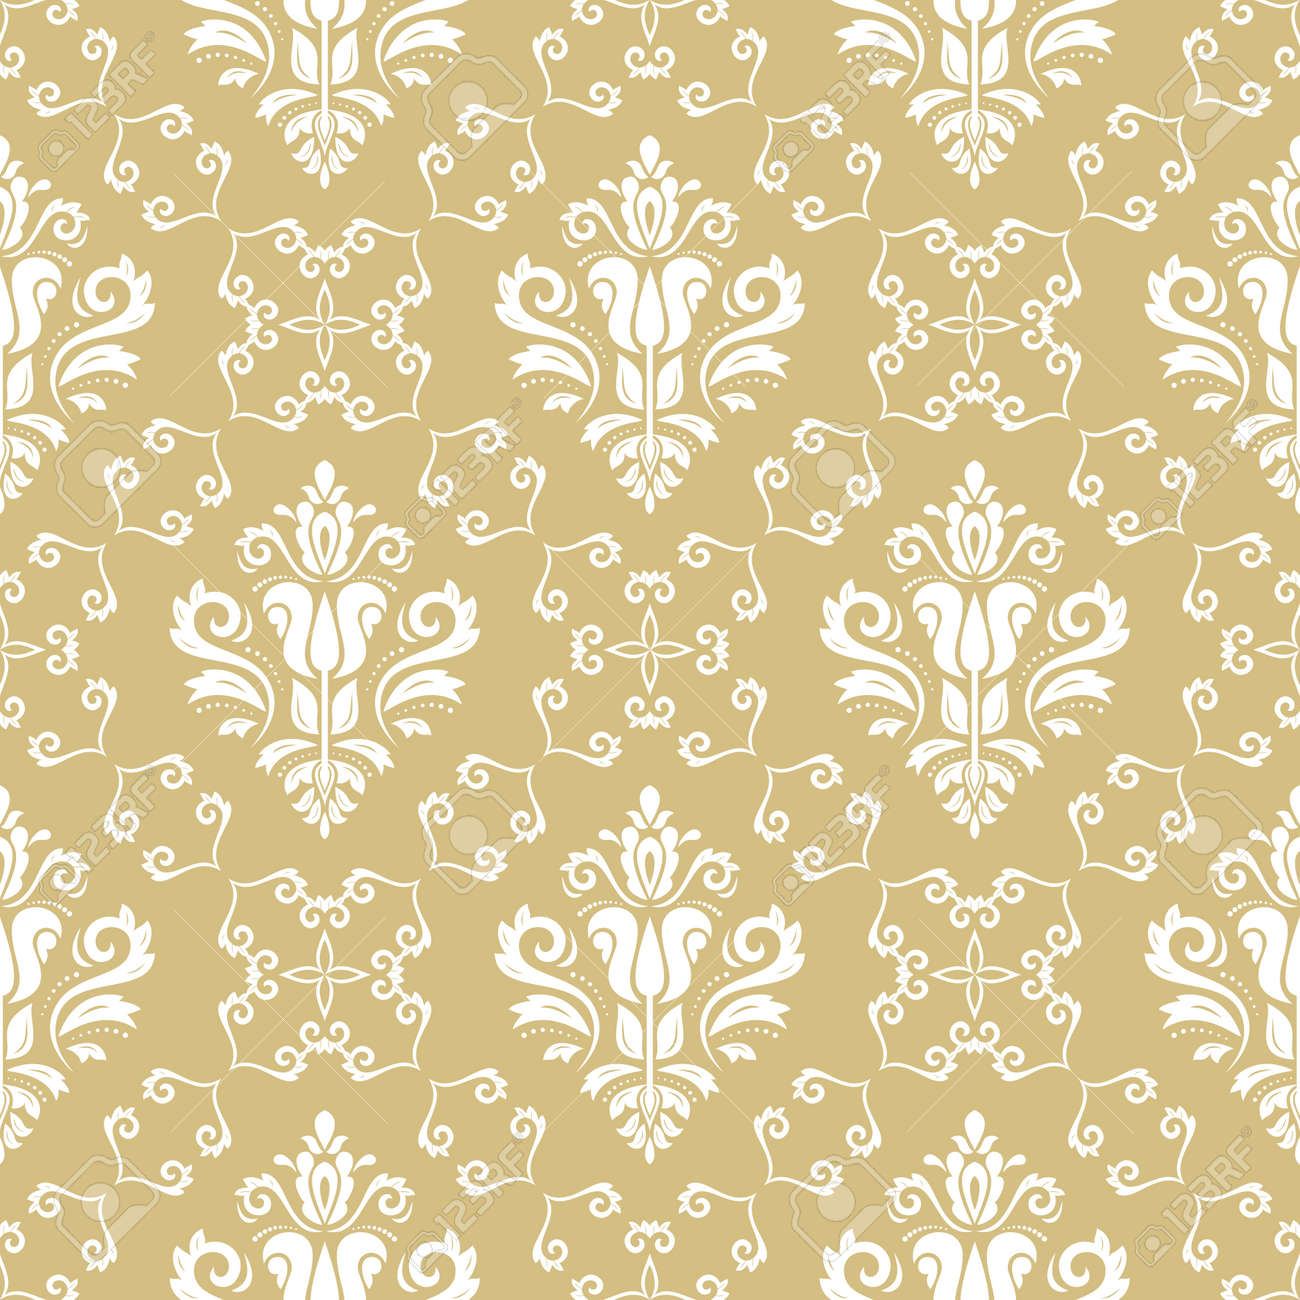 Classic seamless pattern. Damask orient ornament. Classic vintage yellow and white background. Orient ornament for fabric, wallpaper and packaging - 167155953